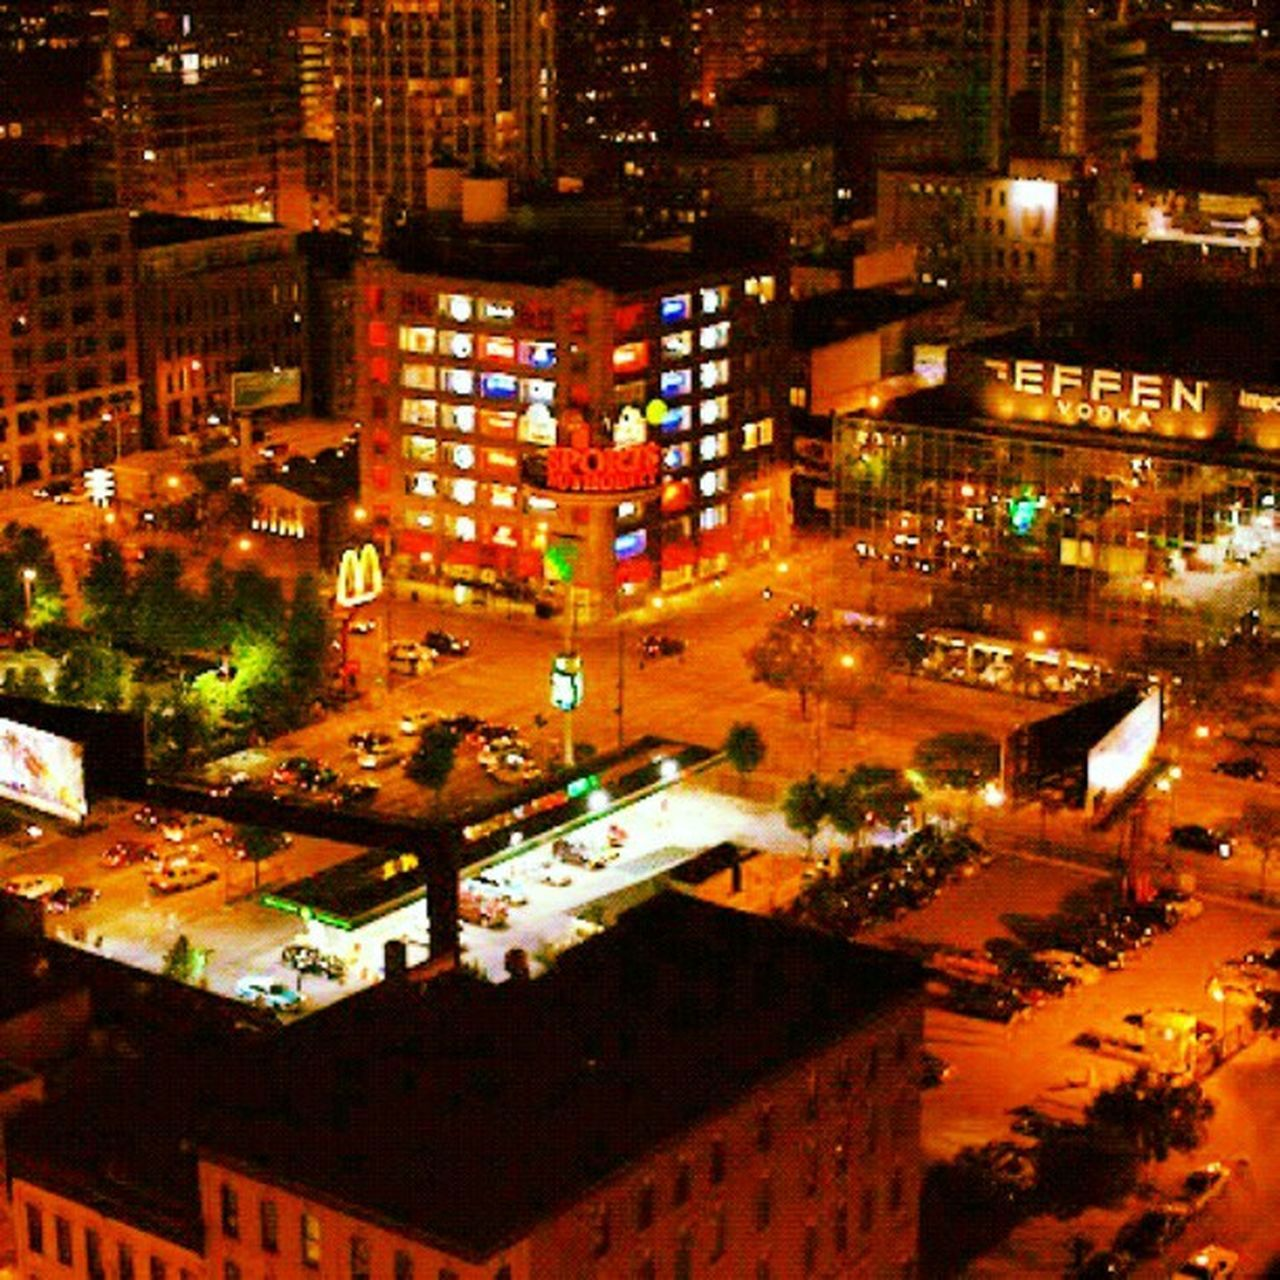 city, illuminated, night, high angle view, cityscape, building exterior, architecture, city life, street, outdoors, road, built structure, no people, nightlife, skyscraper, urban skyline